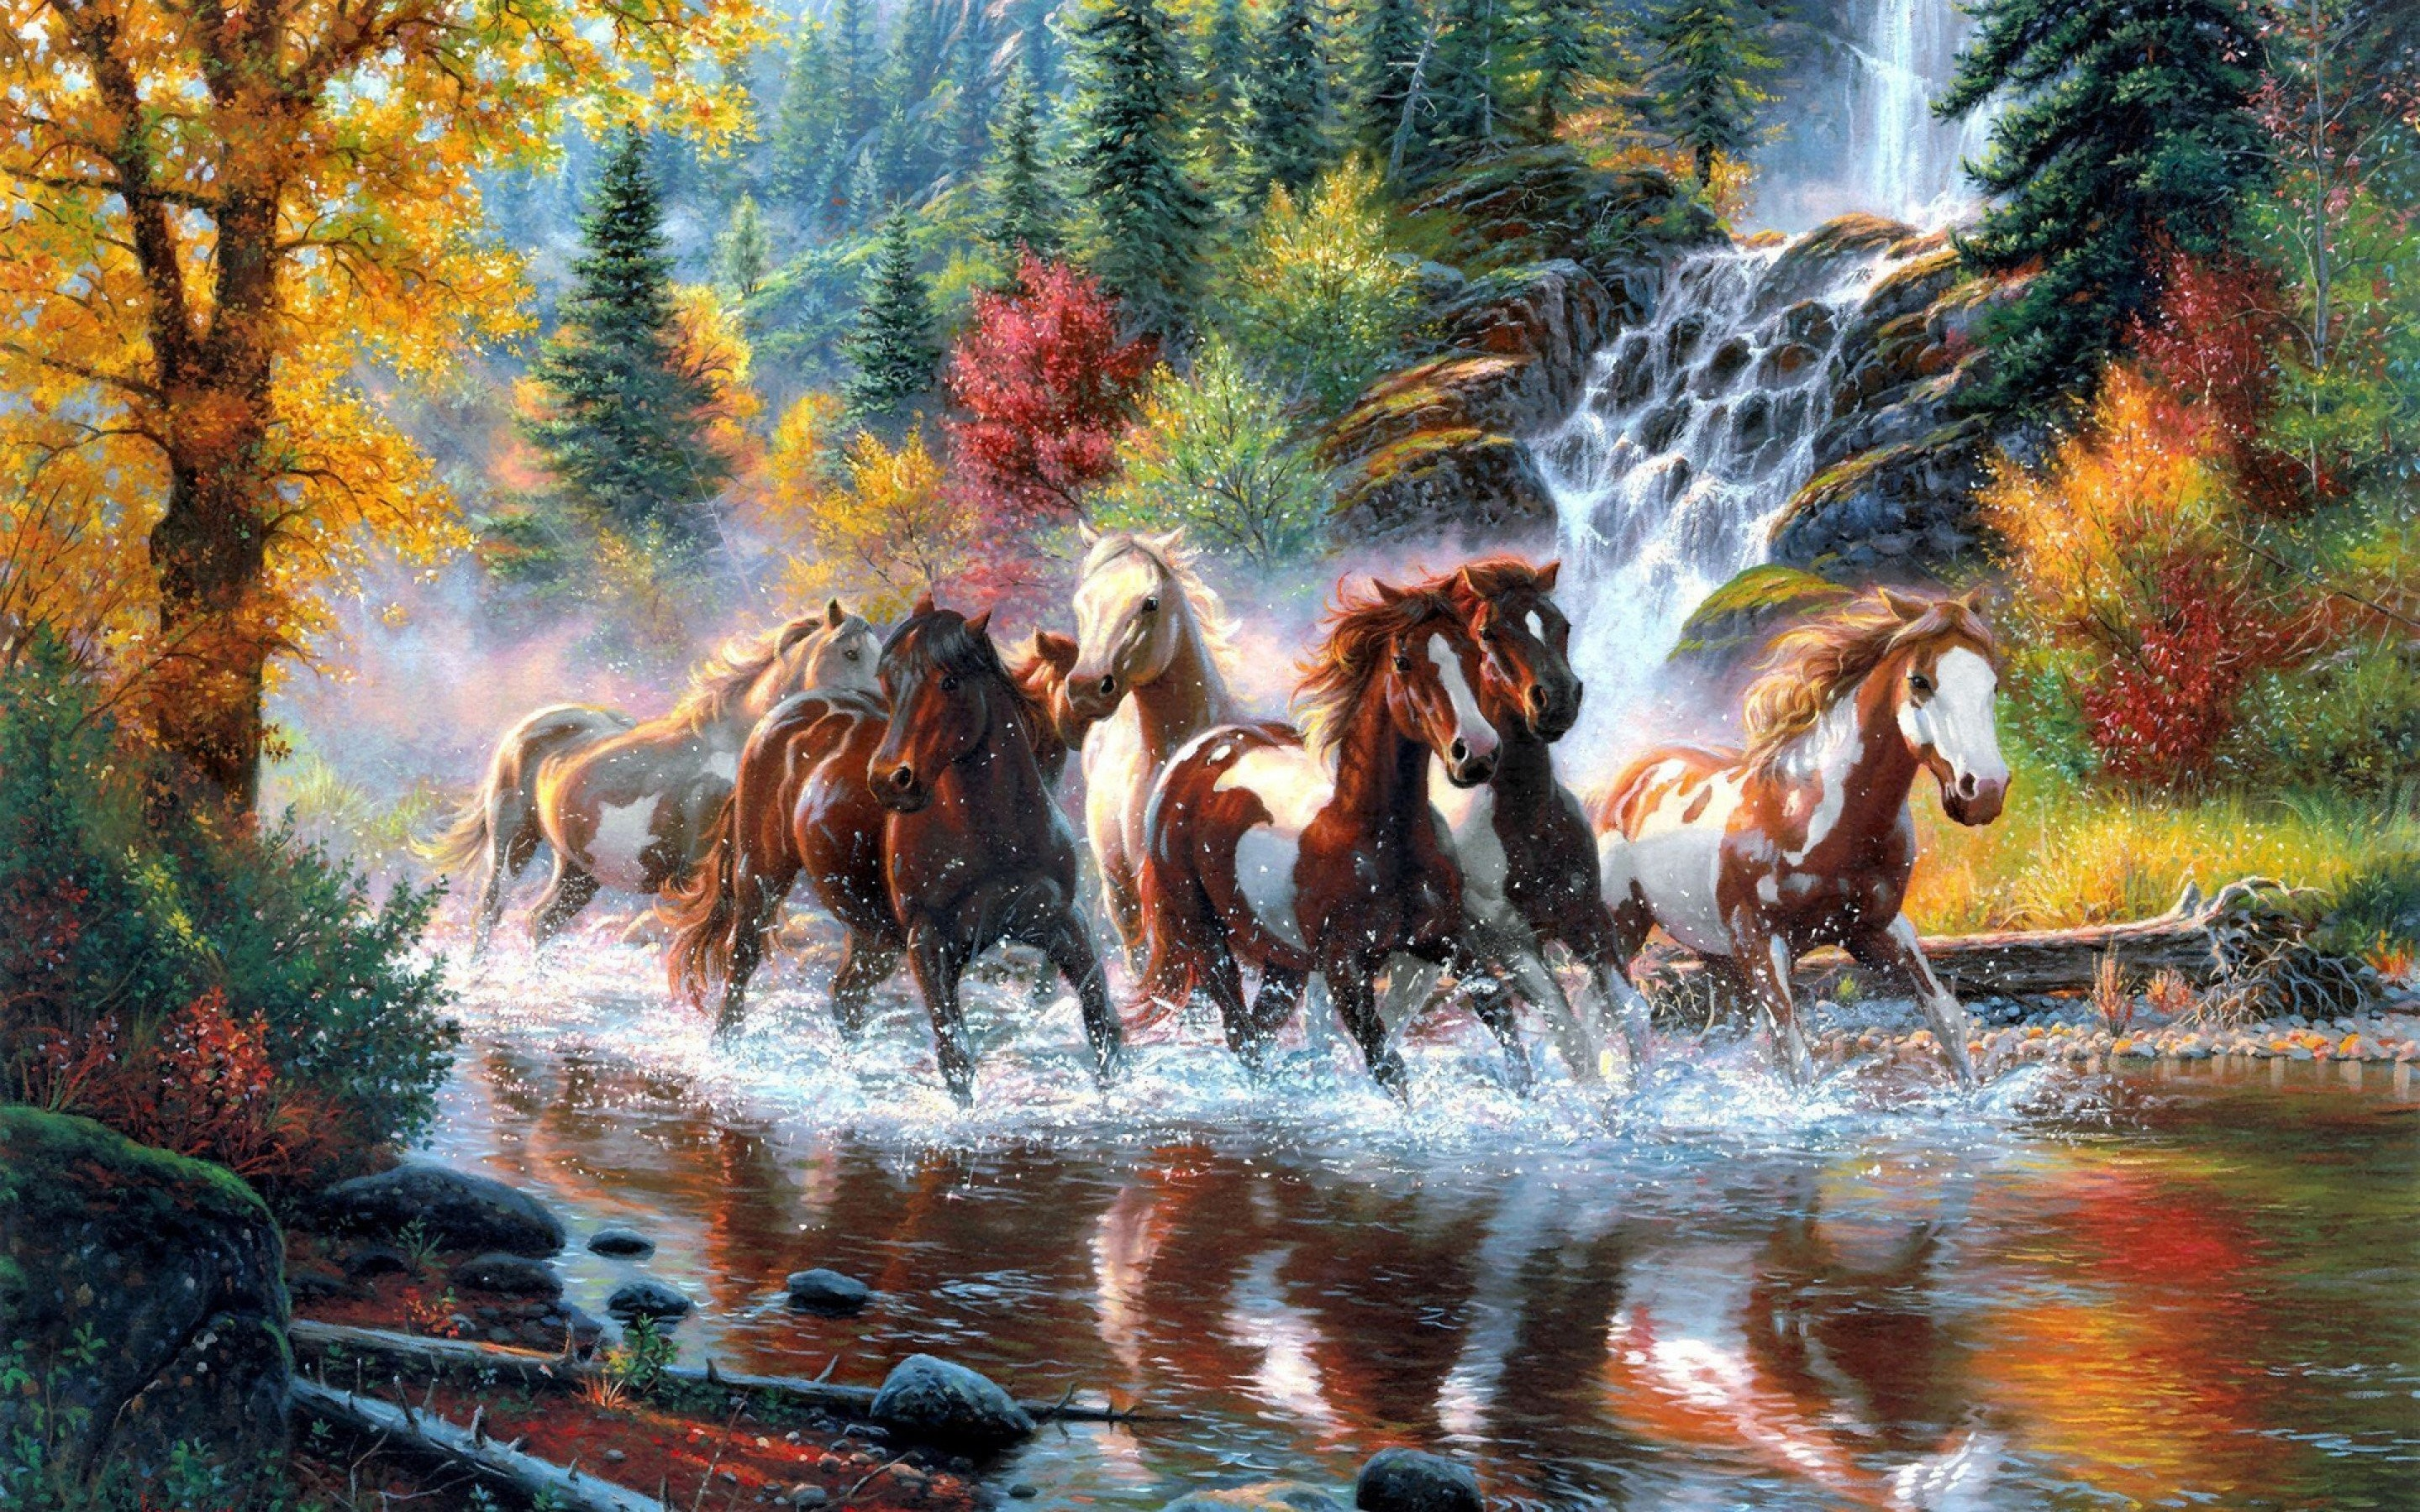 Res: 2880x1800, Landscape nature tree forest woods river horse artwork painting waterfall  autumn country wester native american indian wallpaper |  | 651614  | ...